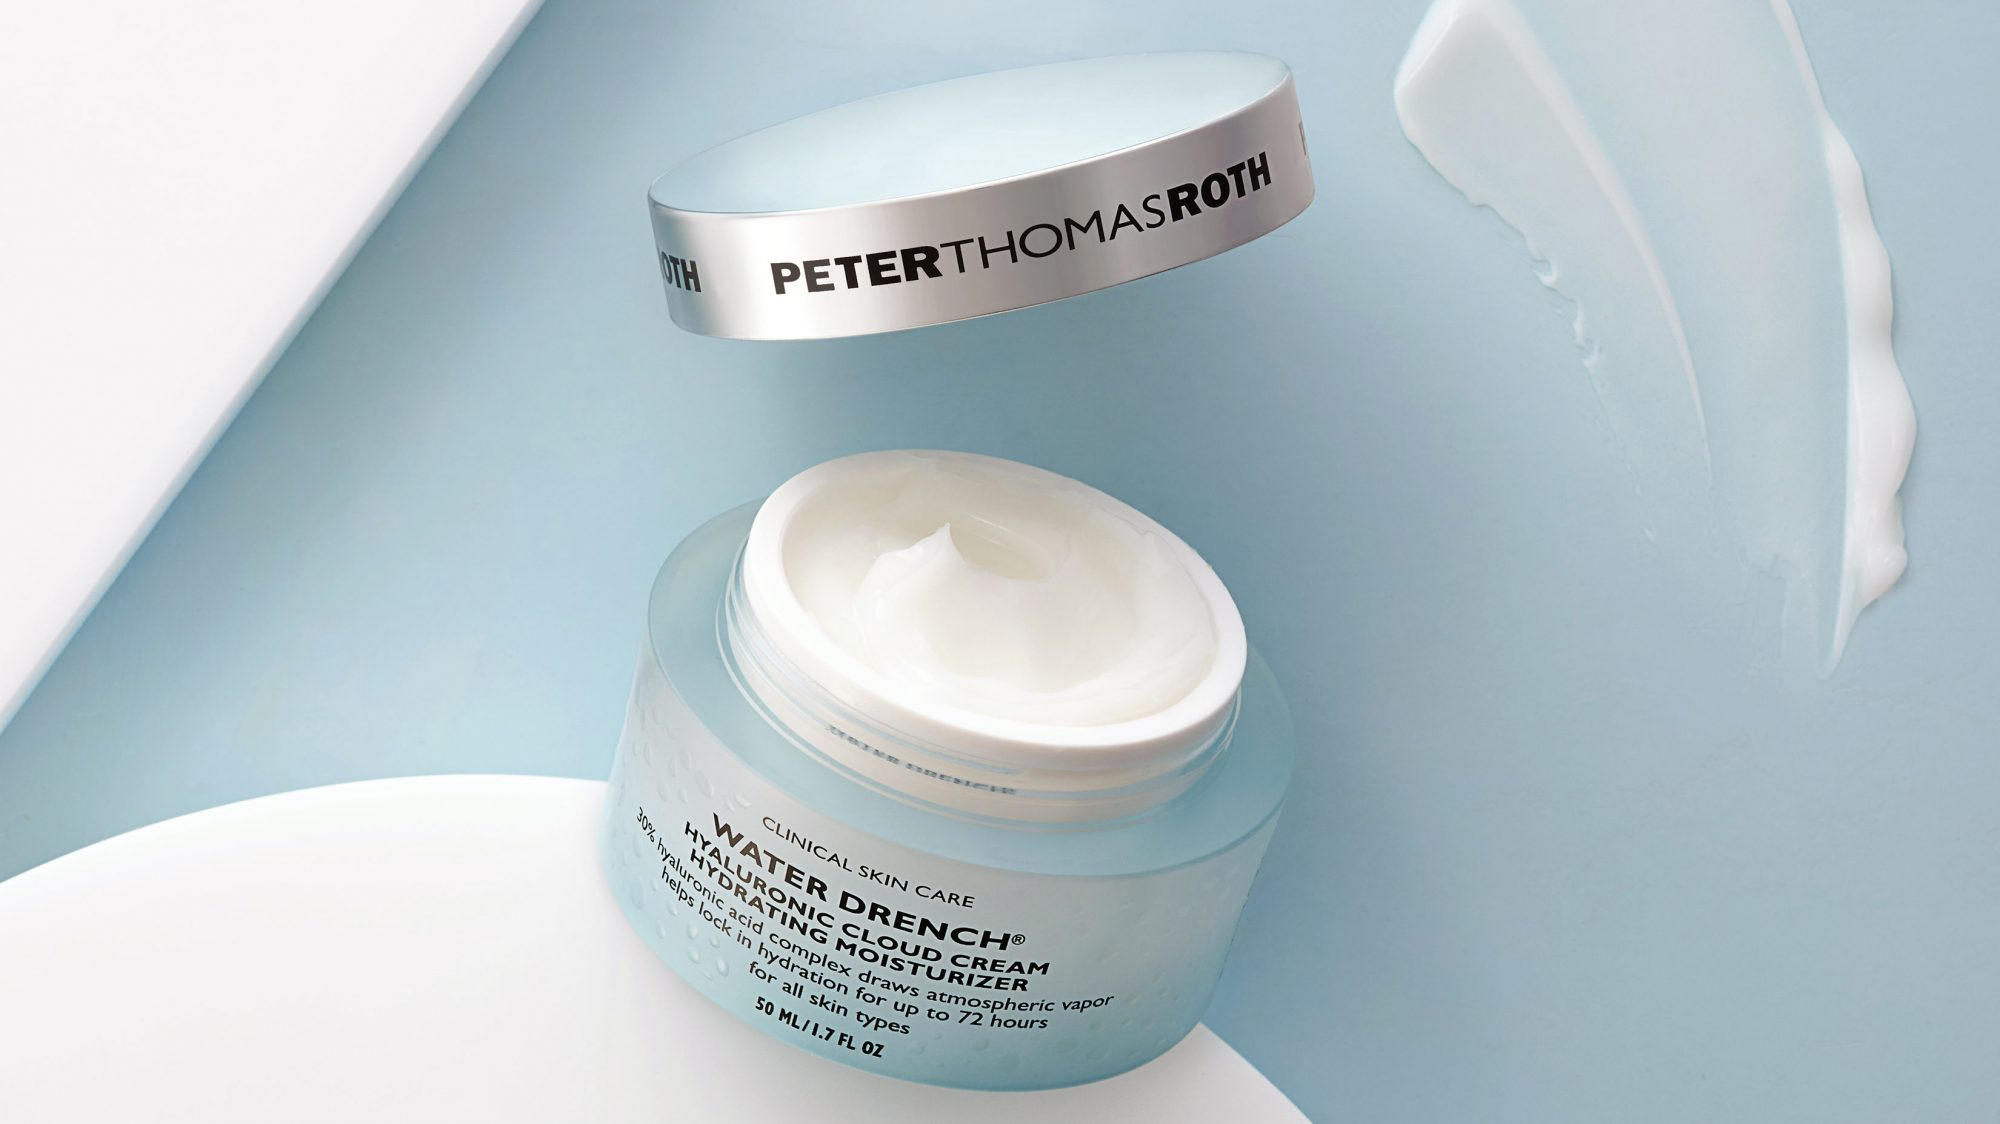 Peter Thomas Roth Water Drench Hyaluronic Cloud Cream Hydrating Face Moisturizer